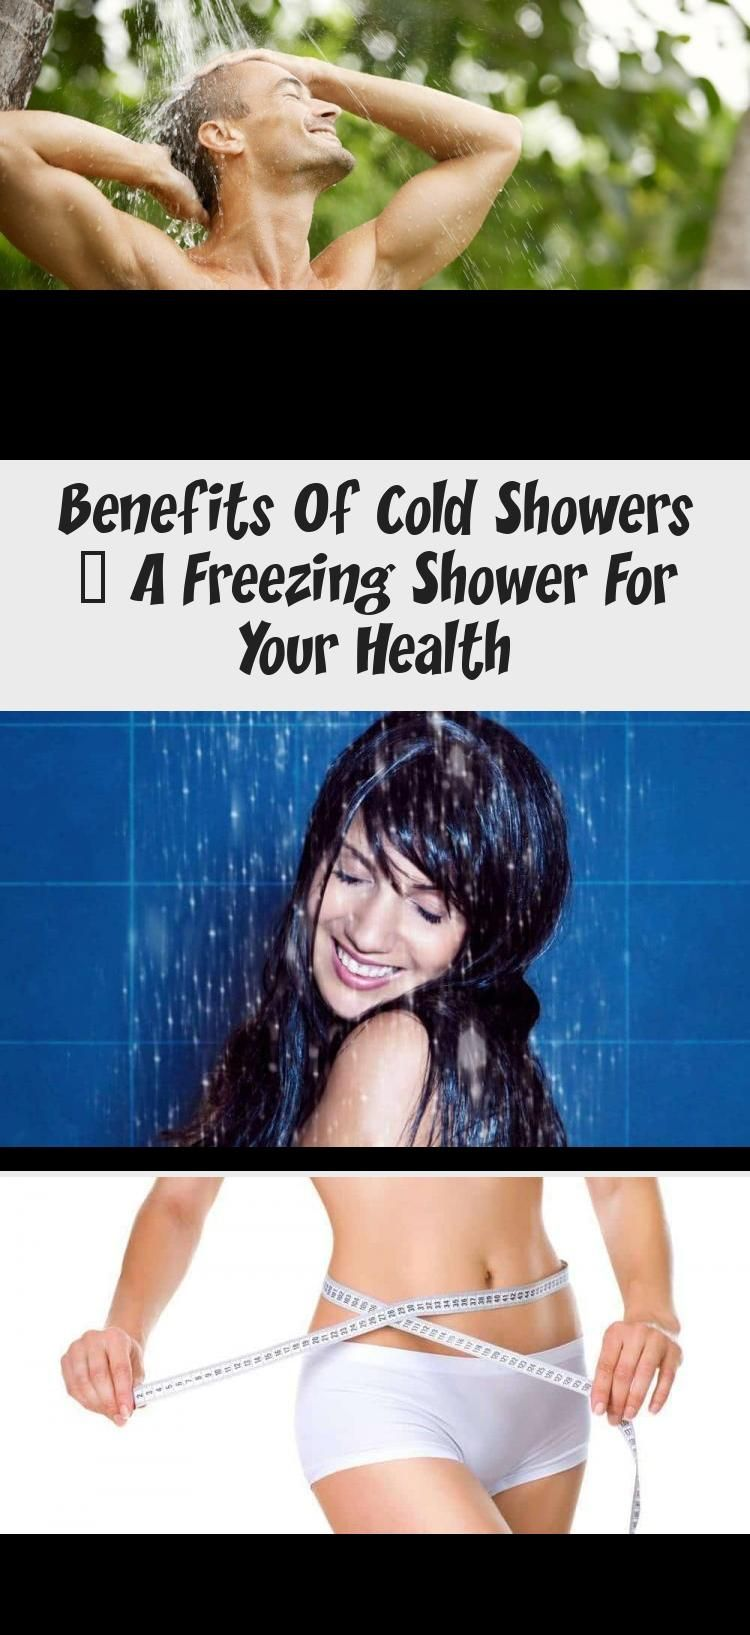 Health Benefits of Cold Showers | Healthy Lifestyle